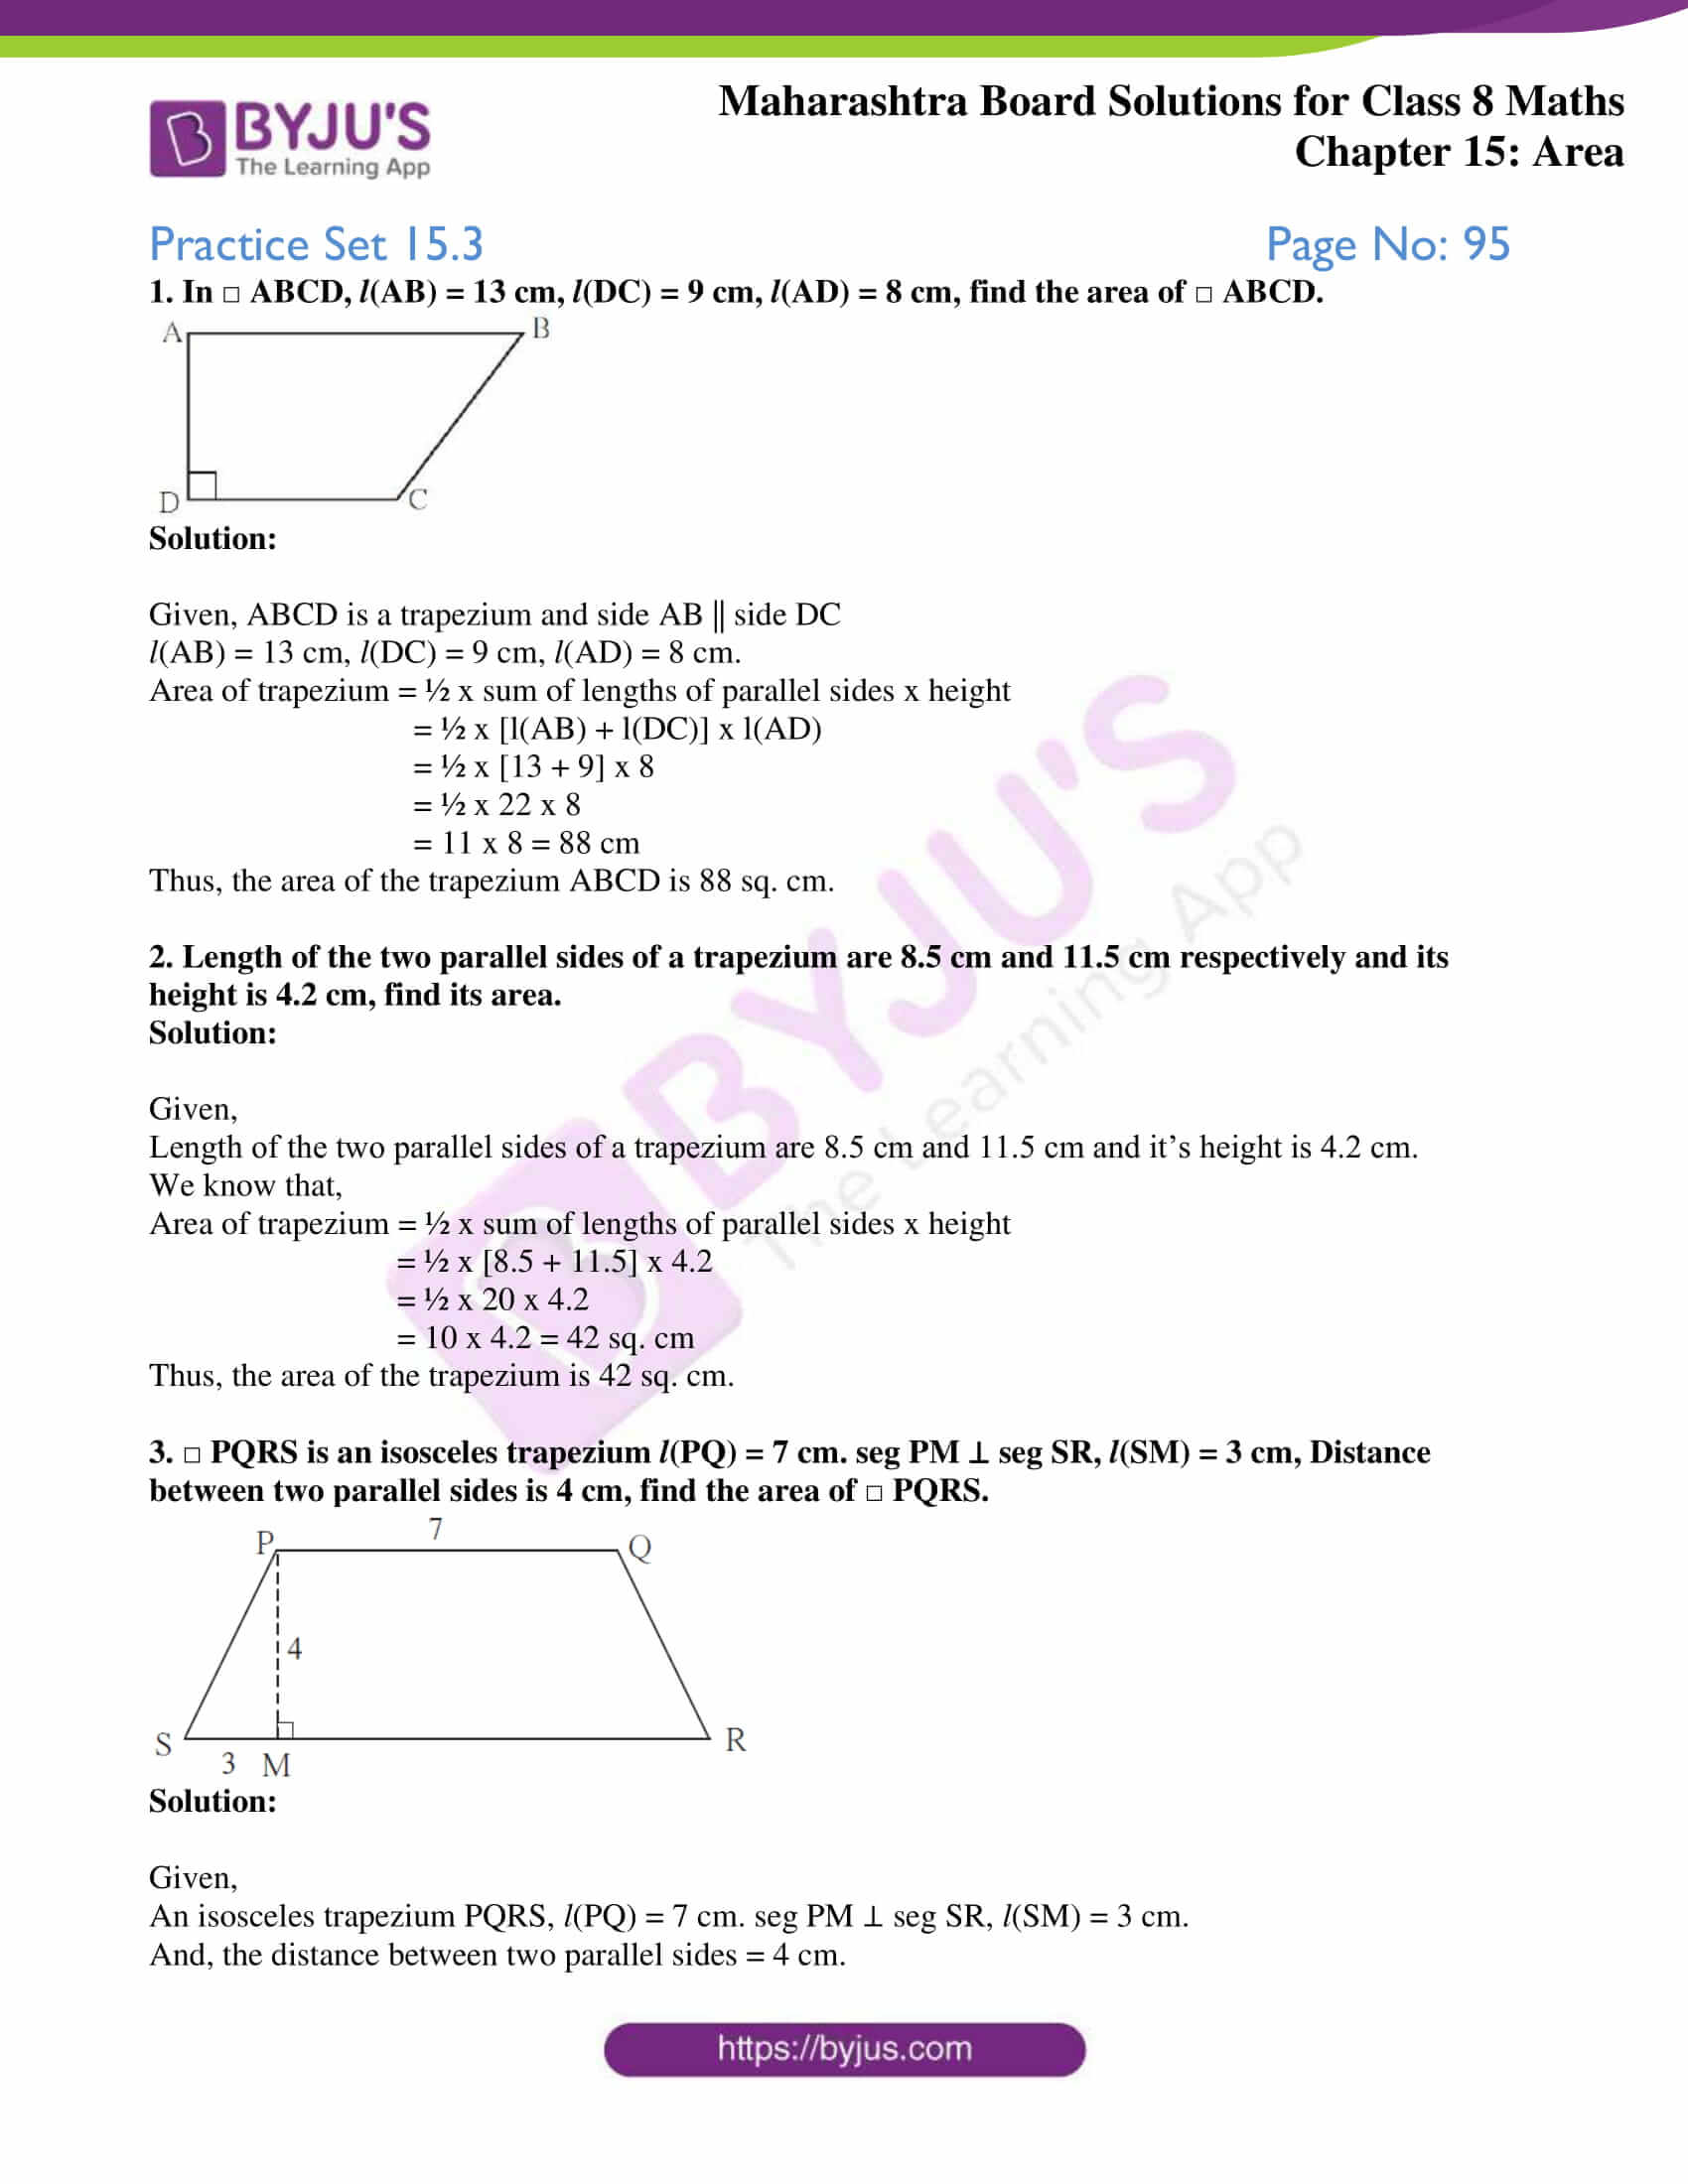 msbshse sol for class 8 maths chapter 15 04